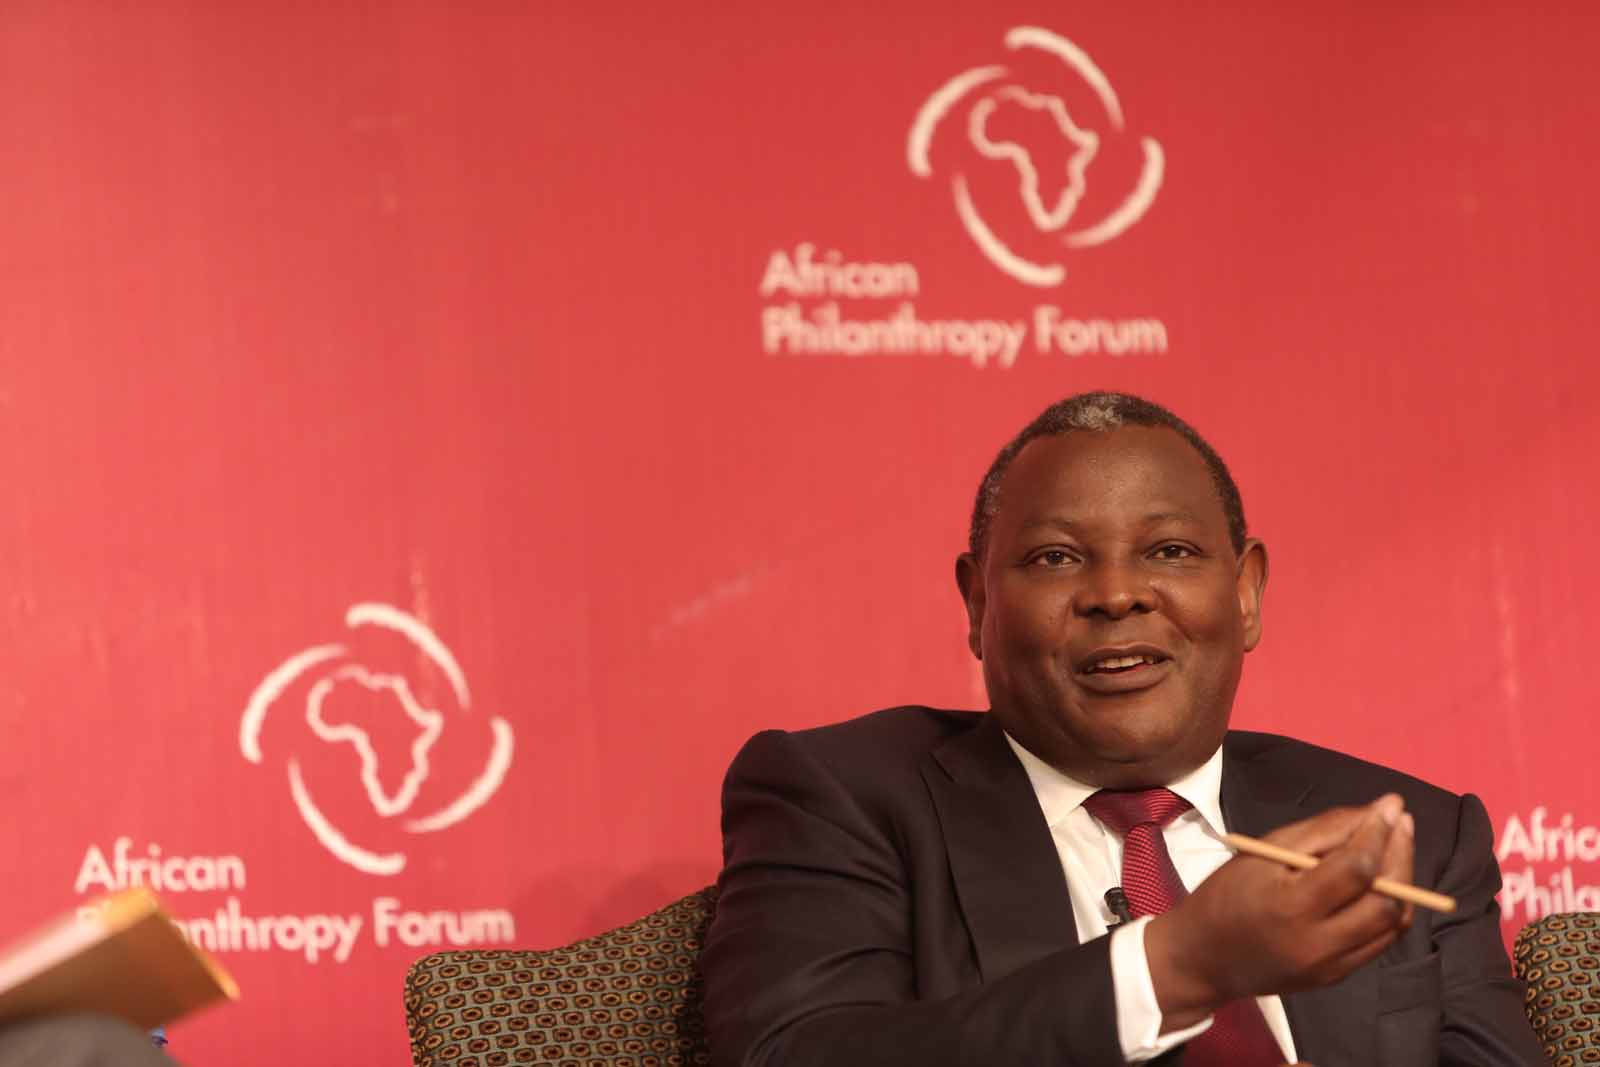 James Mwangi, pioneer of inclusive business